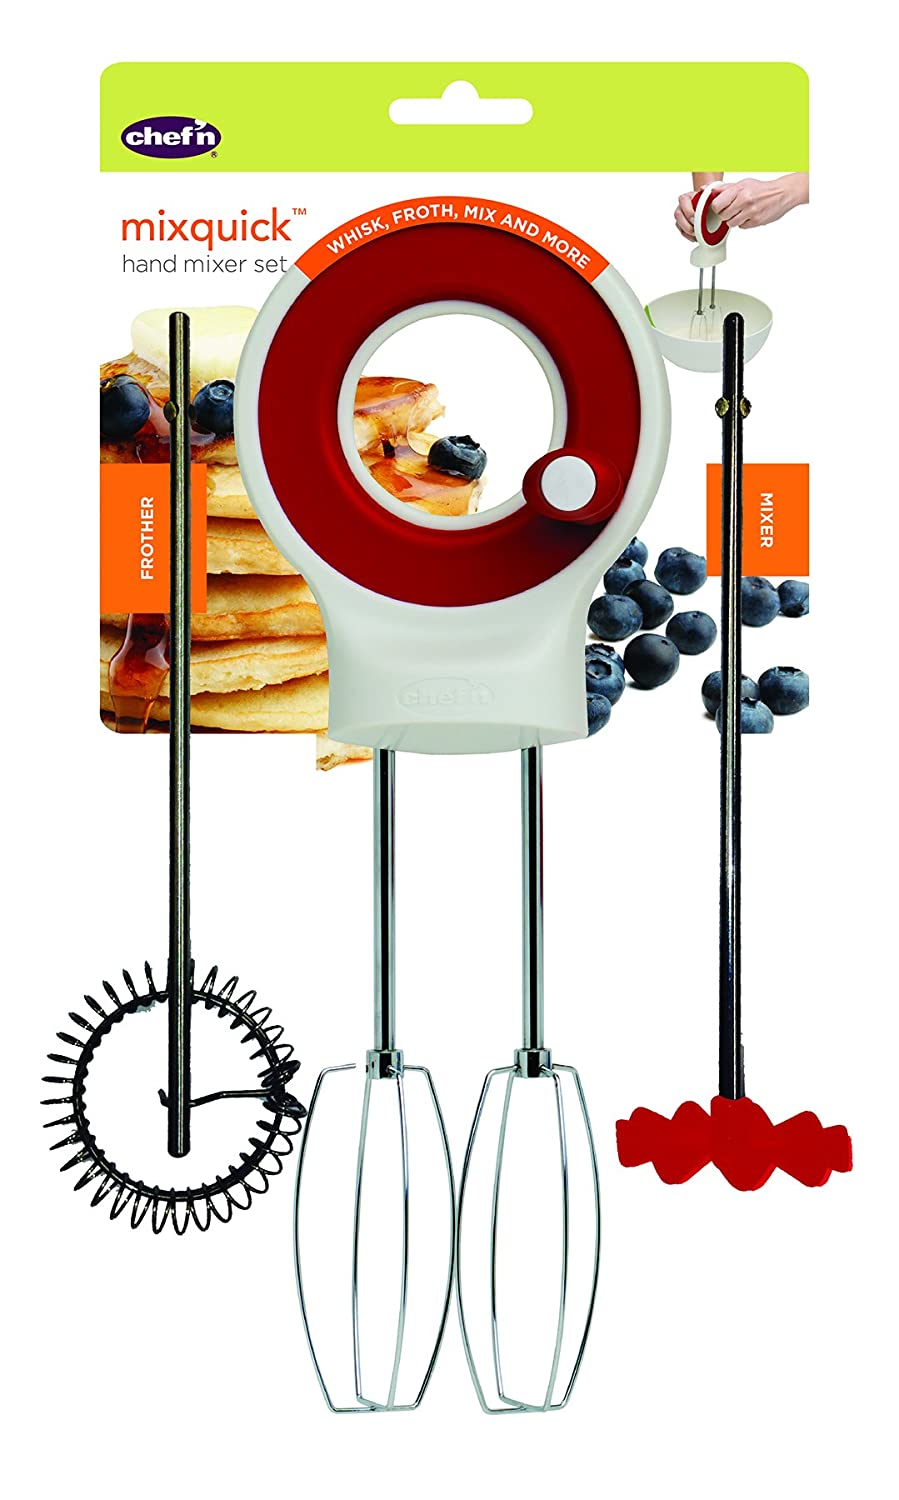 Chef'n Mix Quick Hand Mixer Chef' n 103-660-005